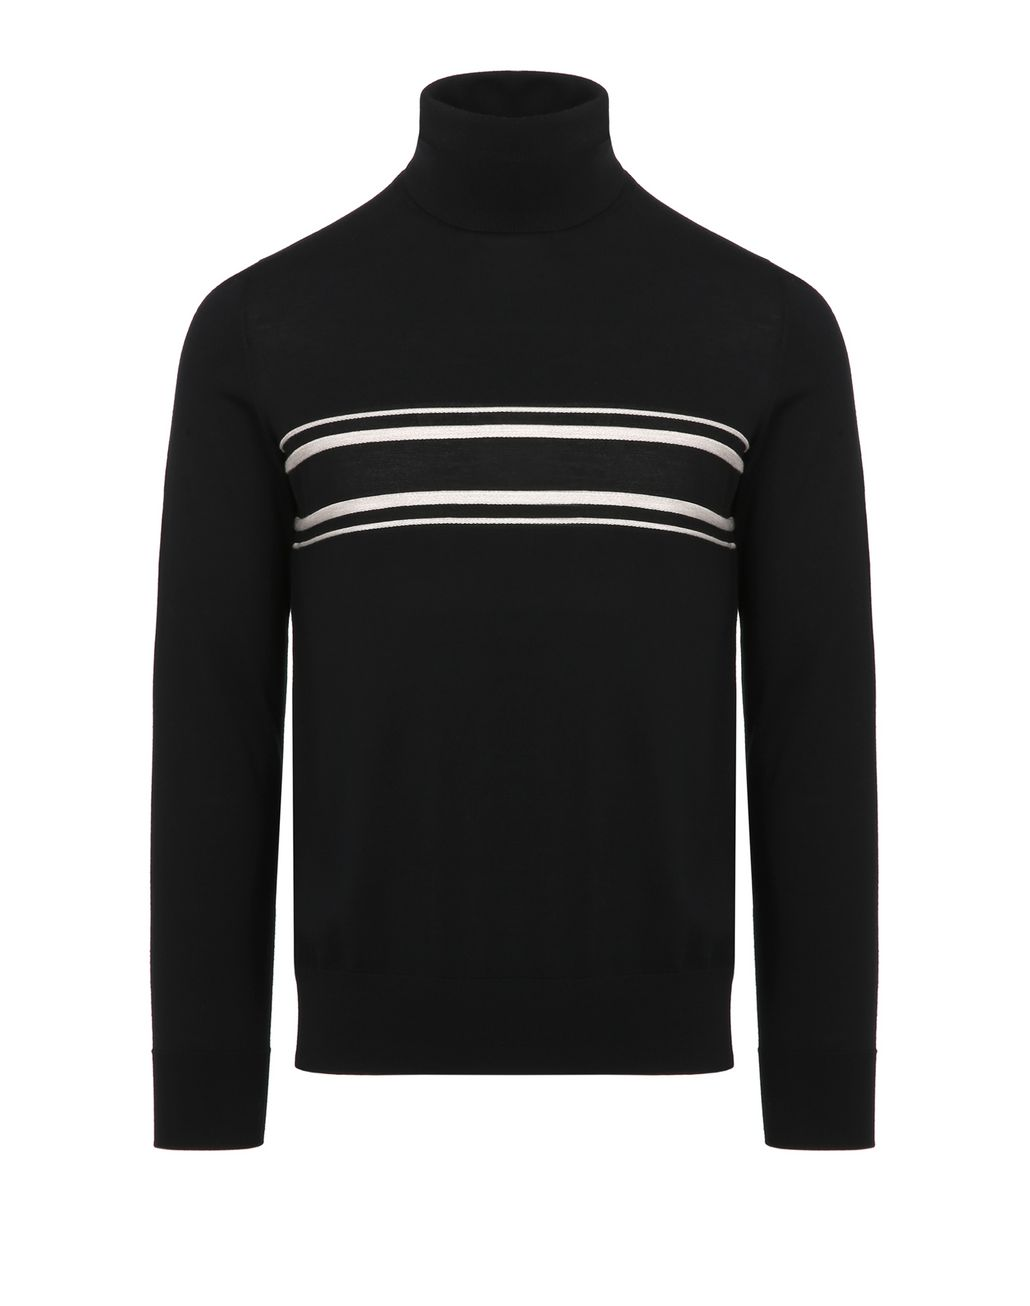 BRIONI Black Turtleneck Sweater Knitwear Man f